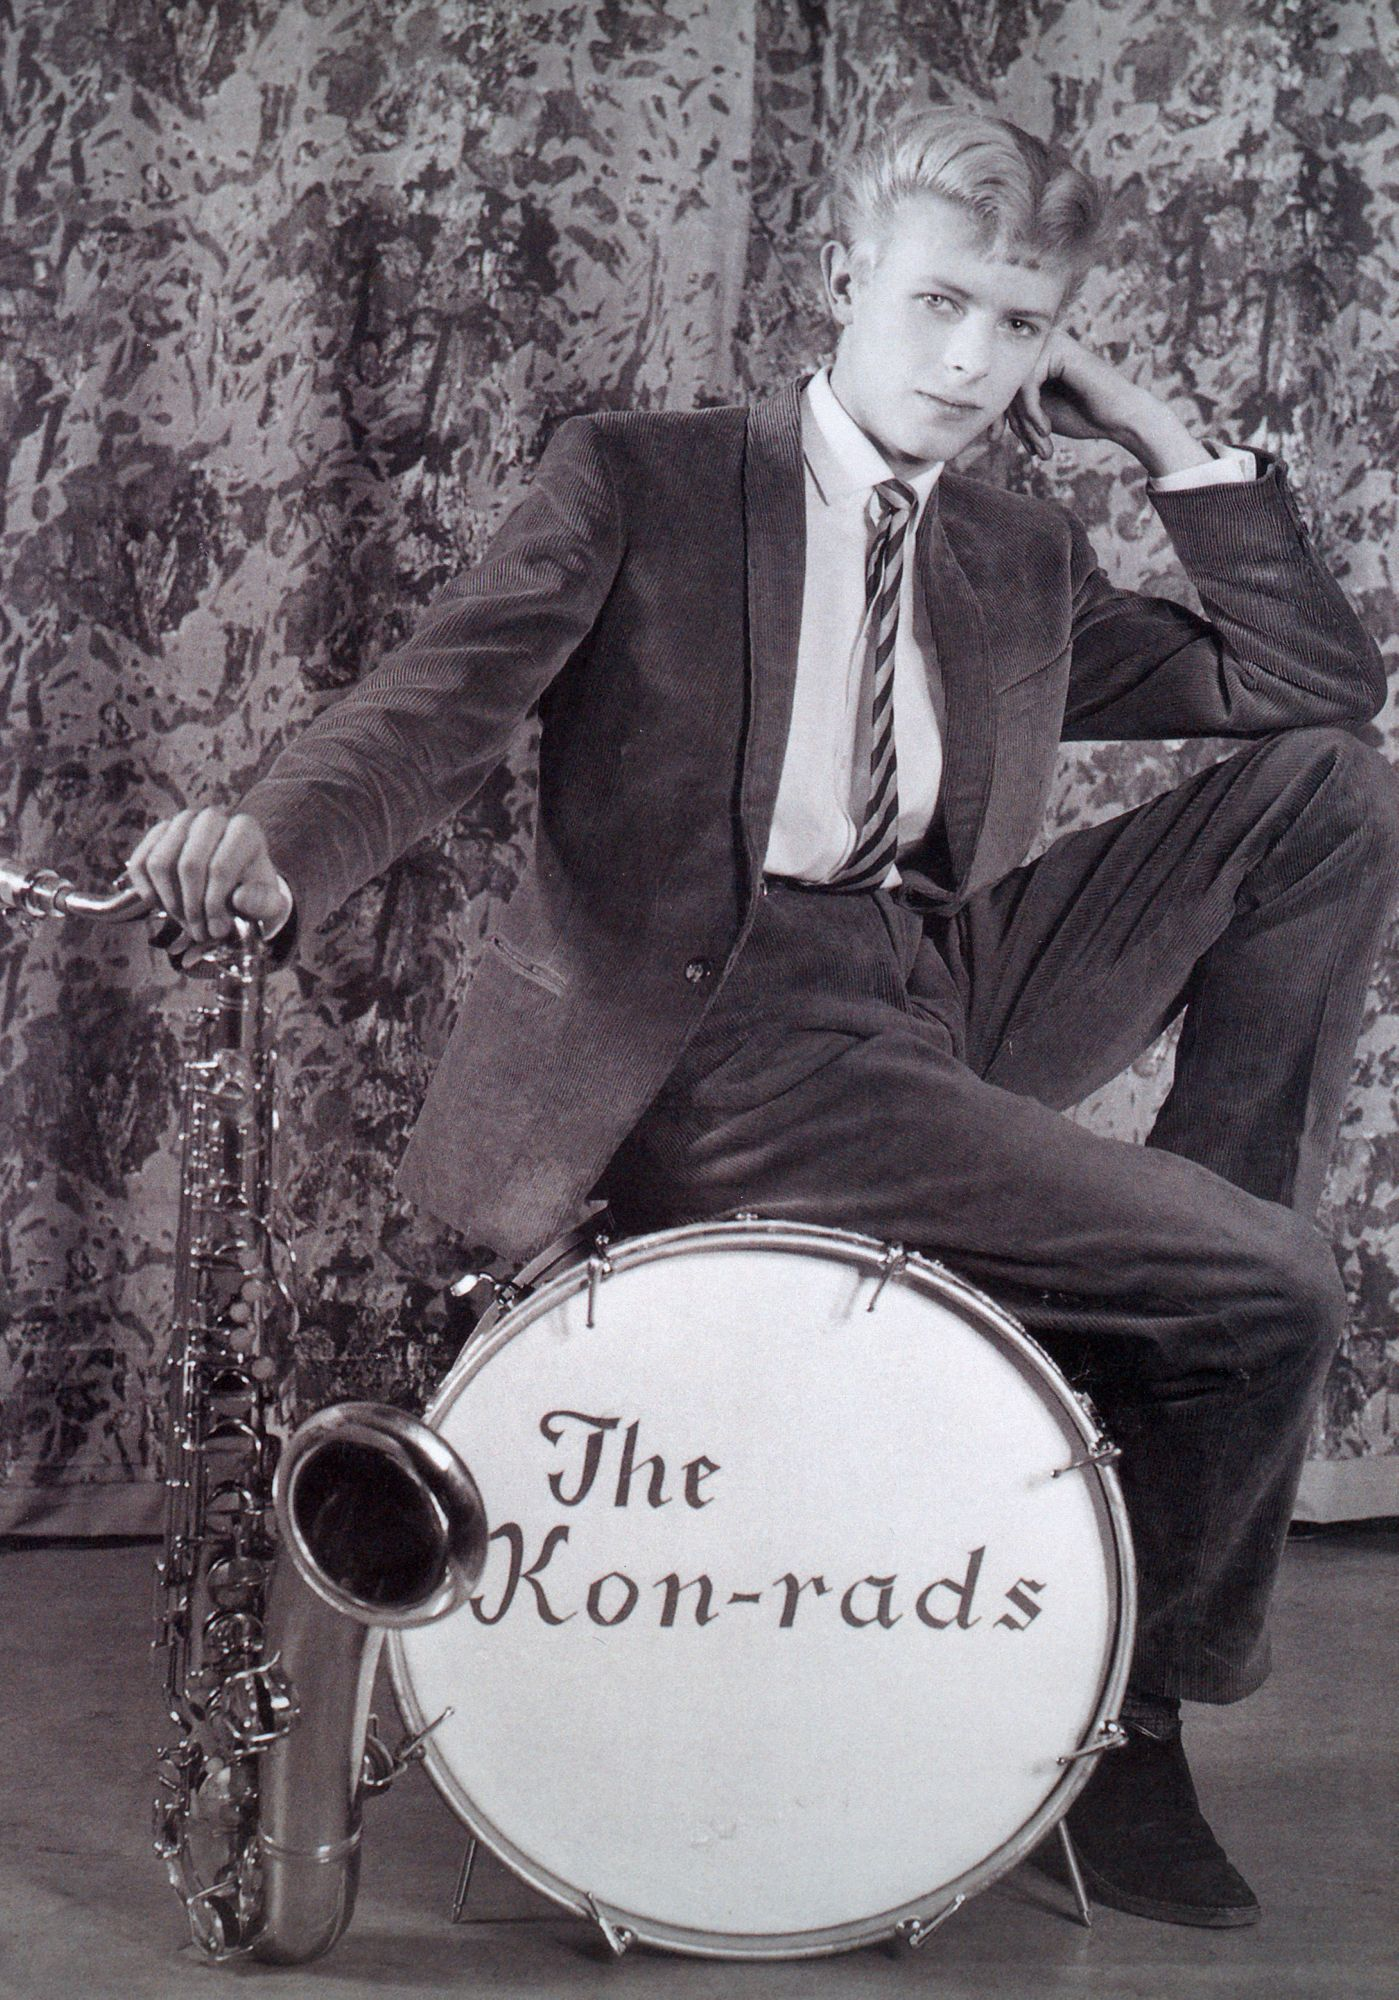 Publicity photograph for The Kon-rads, 1963,Courtesy of The David Bowie Archive © Victoria and Albert Museum